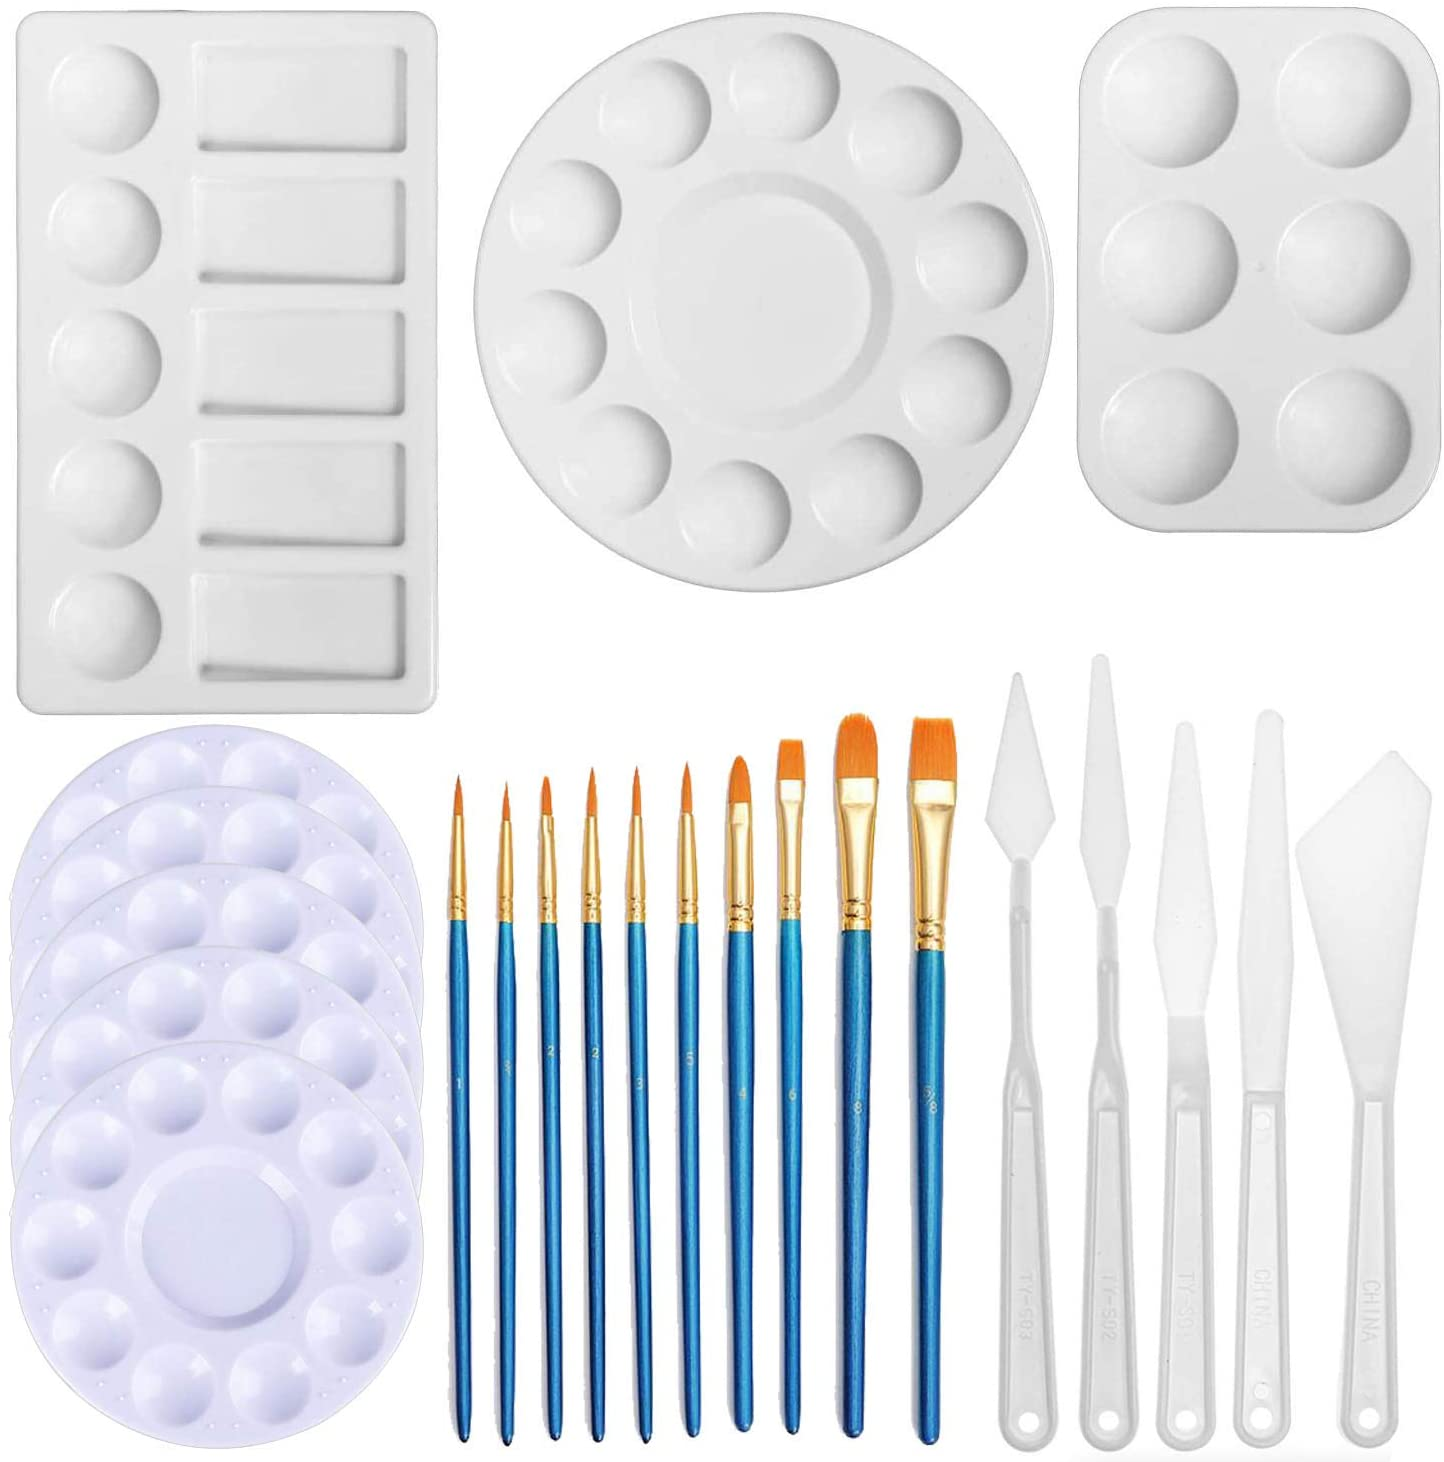 Seasonsky 23 PCS Paint Palette and Knife Tools Art Painting Sets, 10 PCS Paint Palette, 5 PCS Paint Knife and 10 PCS Brushes for Kids, Adults, Students to Acrylic Oil Watercolor Craft Supplies DIY